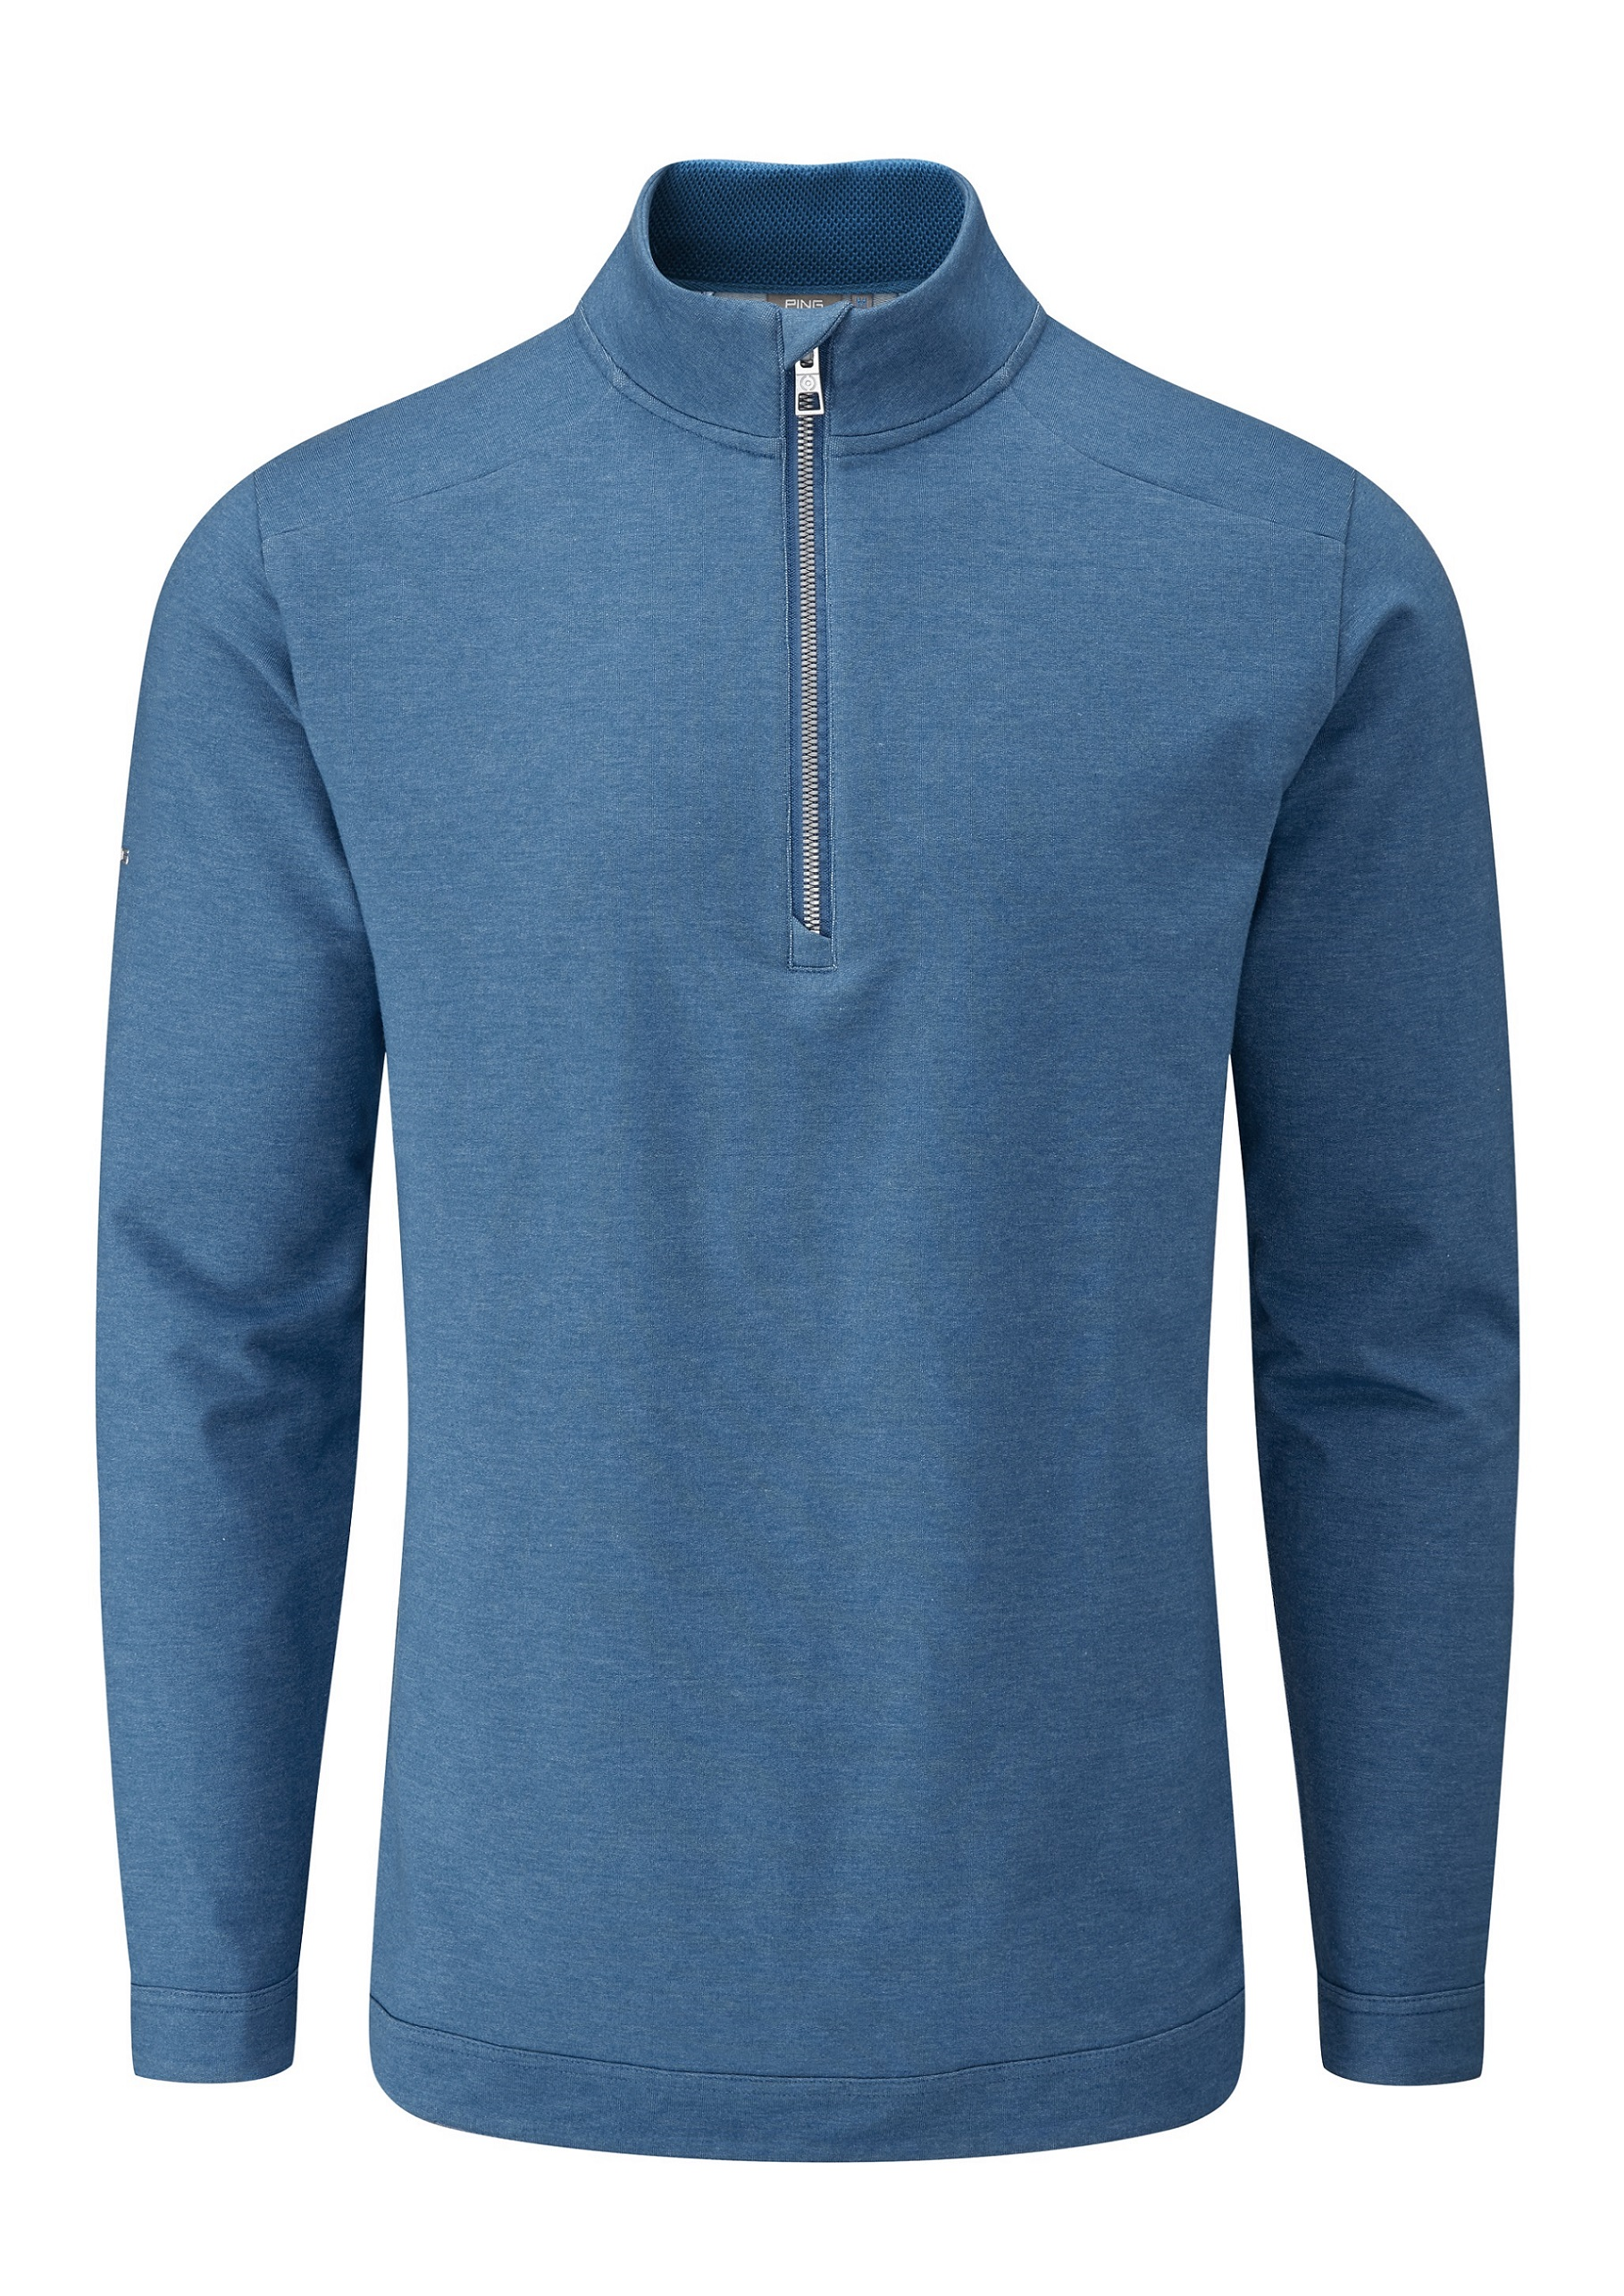 Svalkande vår/sommar-kollektioner från Ping - Herman. Soft-touch, quarter-zip pullover. Engineered with performance blended fabric and soft-cotton touch. Moisture-moving properties make it a year-round companion.